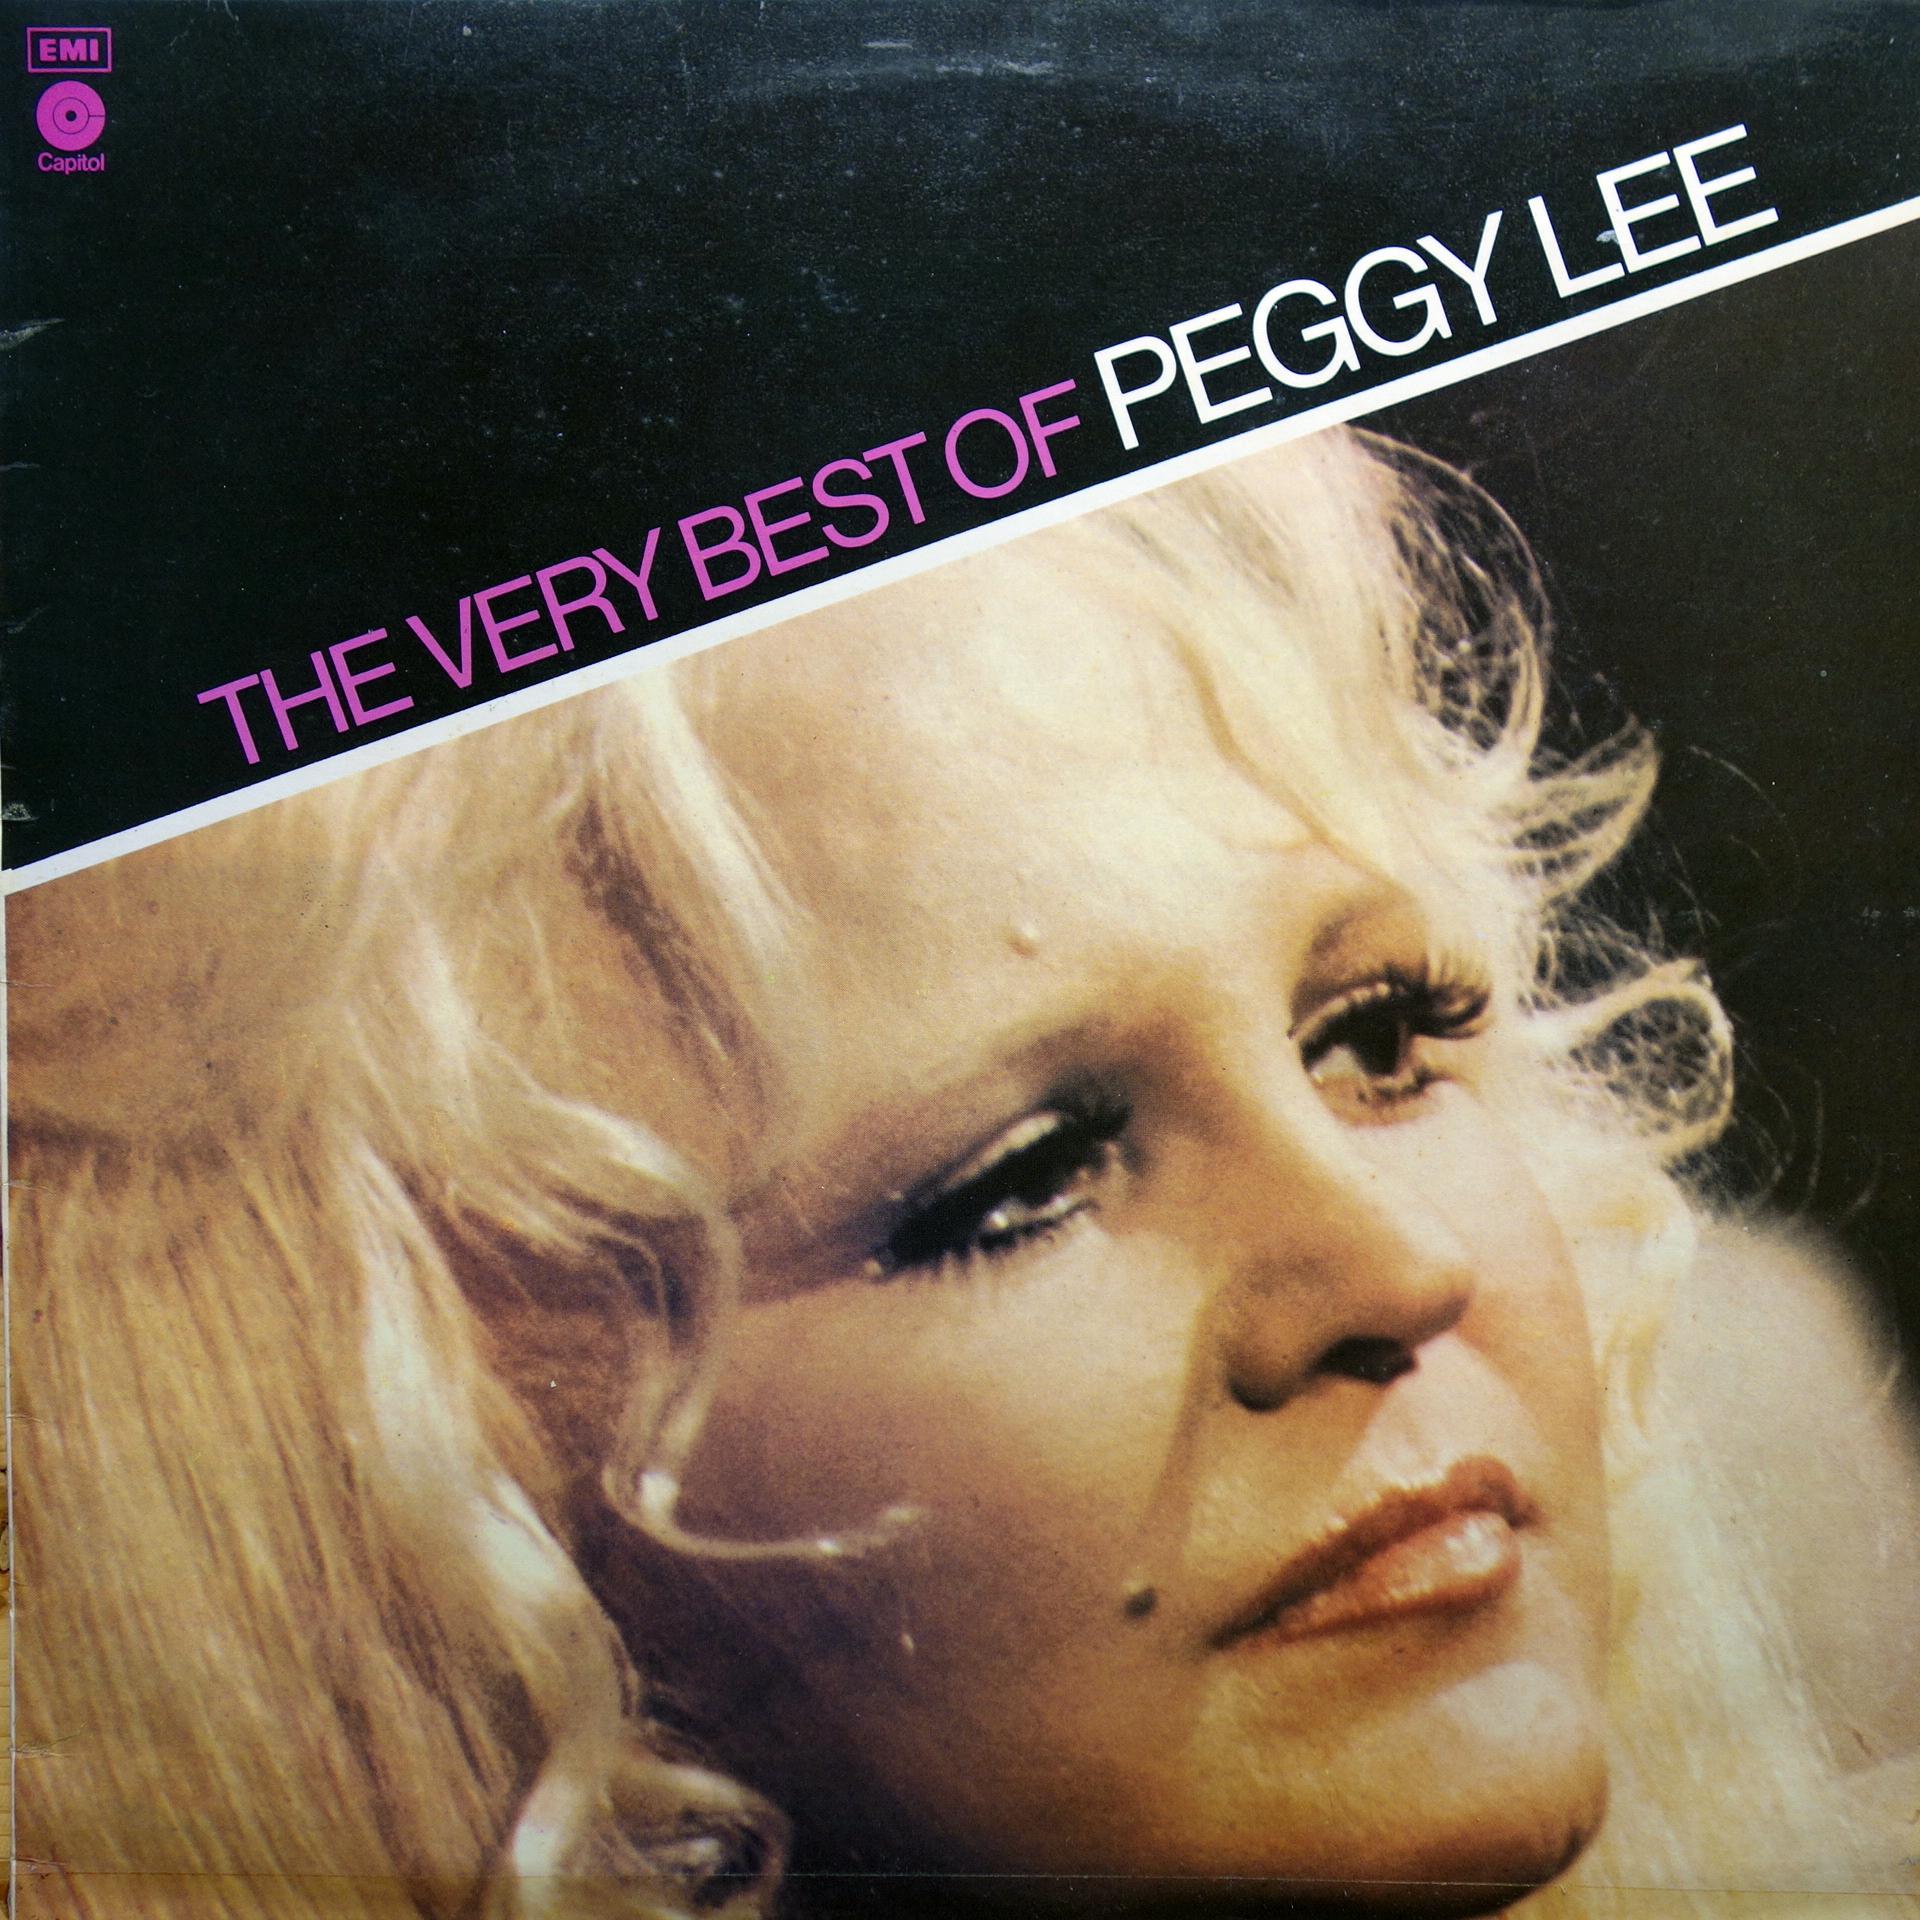 LP Peggy Lee - The Very Best Of Peggy Lee